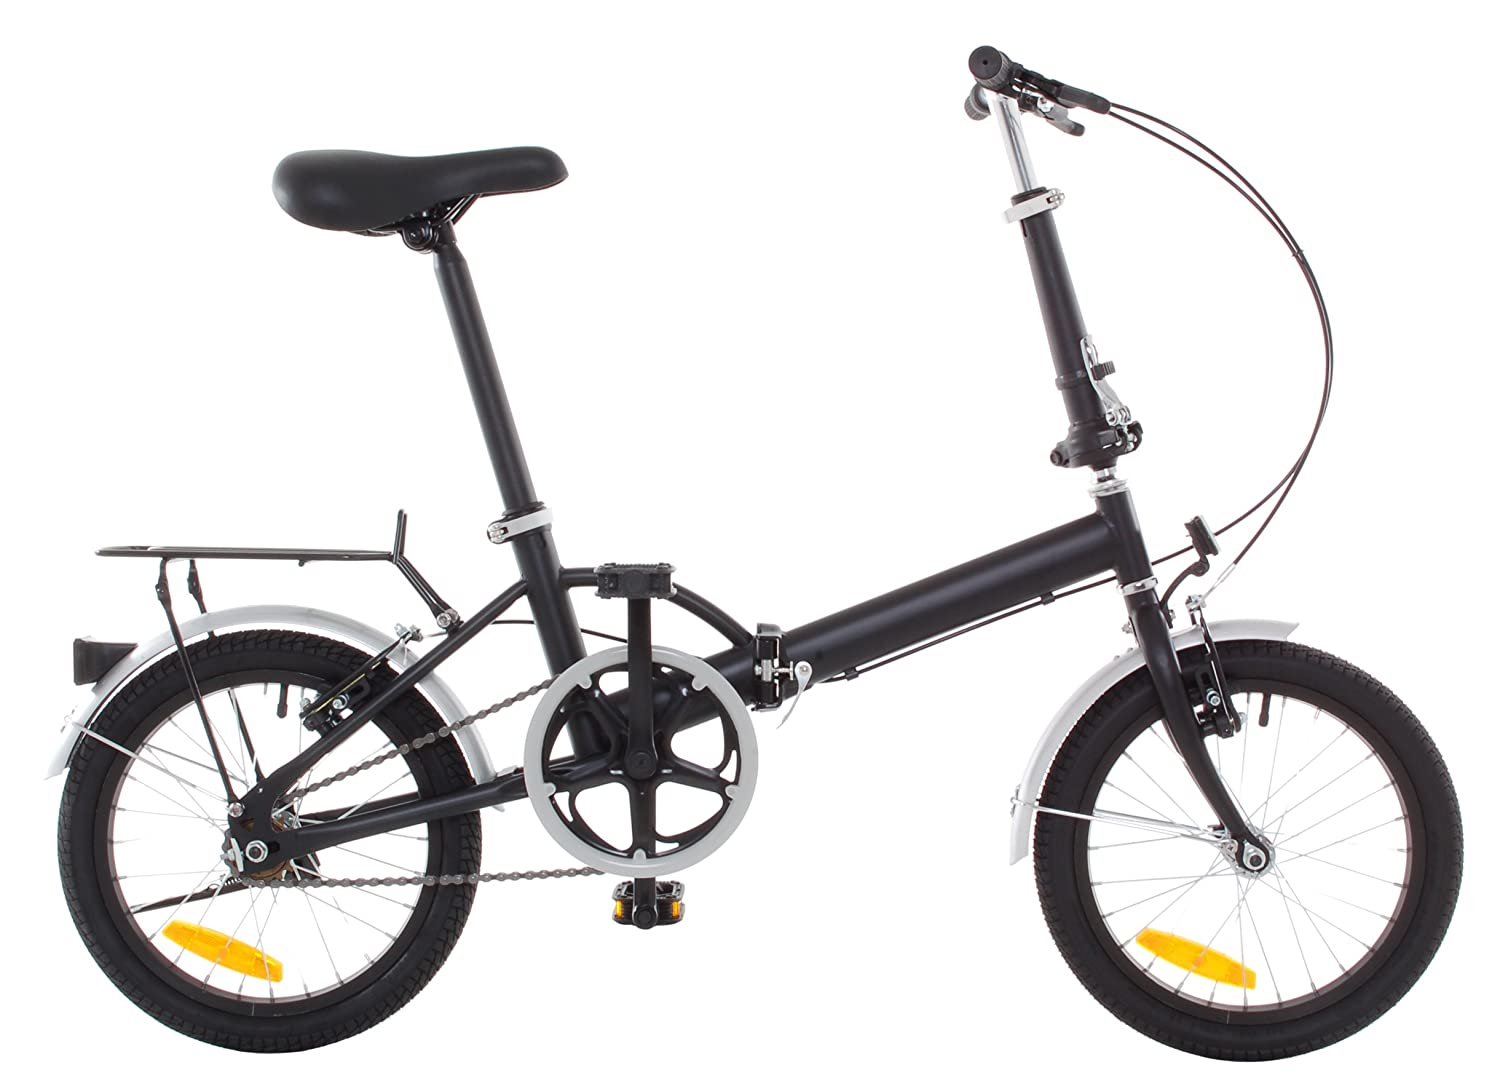 Top 10 Best Folding Bikes Reviews in 2020 8